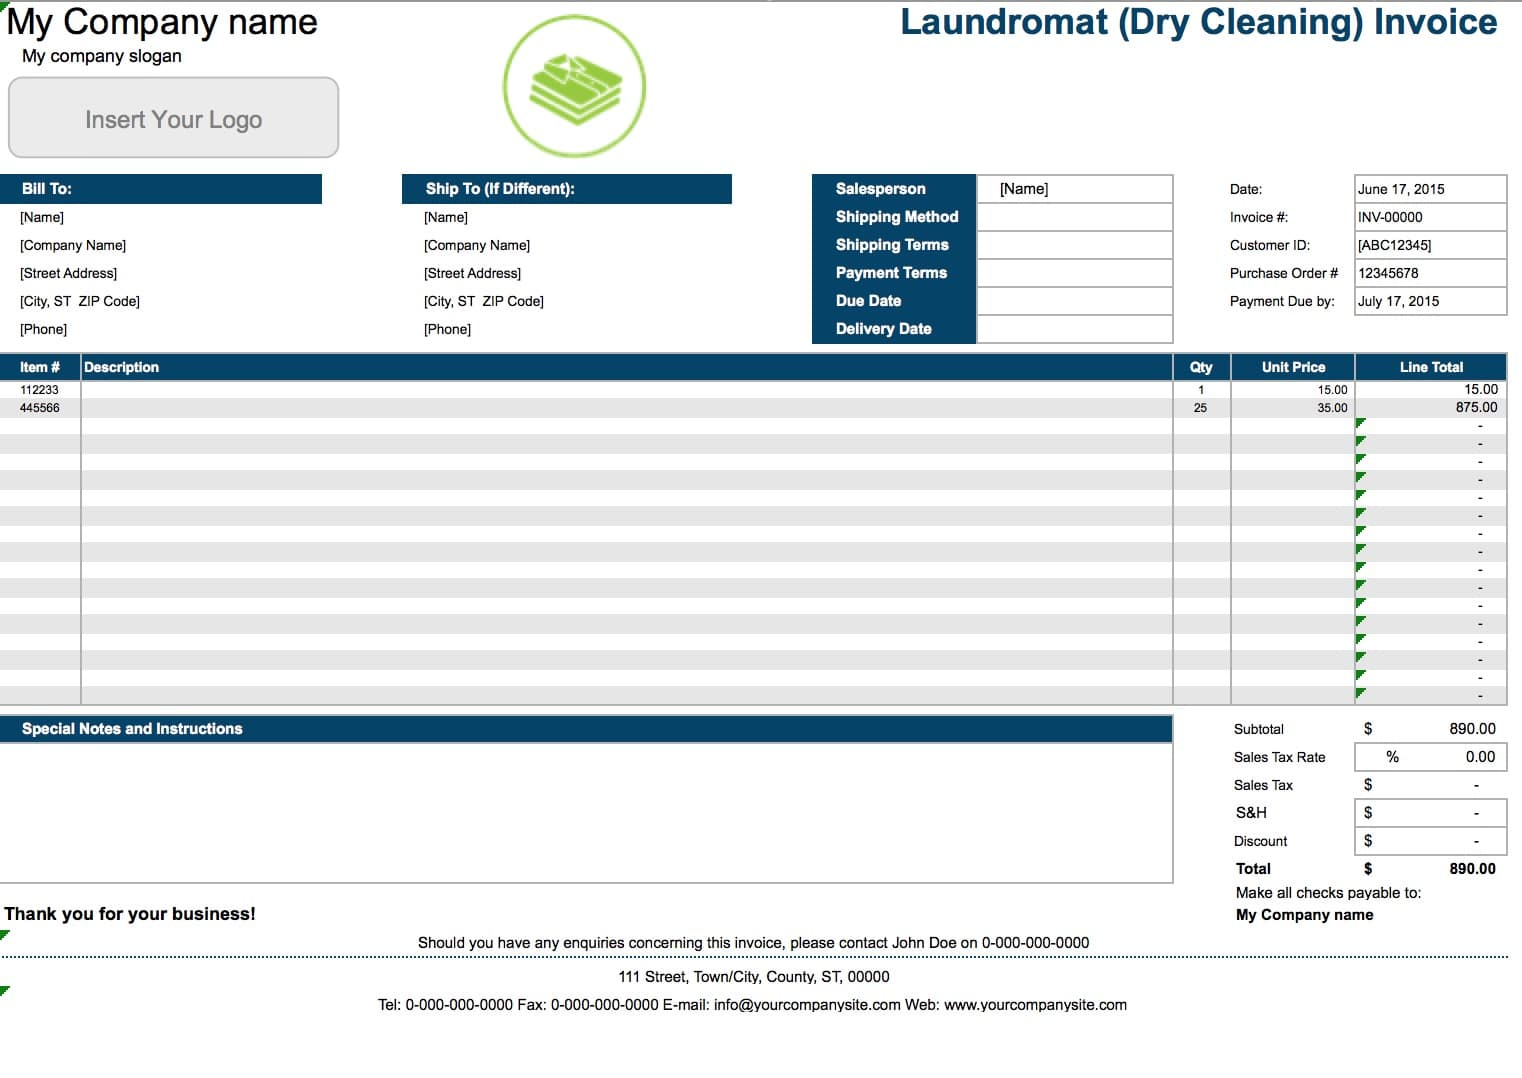 Free Laundromat (Dry Cleaning) Invoice Template | Excel | PDF | Word (.doc)  Free Invoice Template Download For Excel